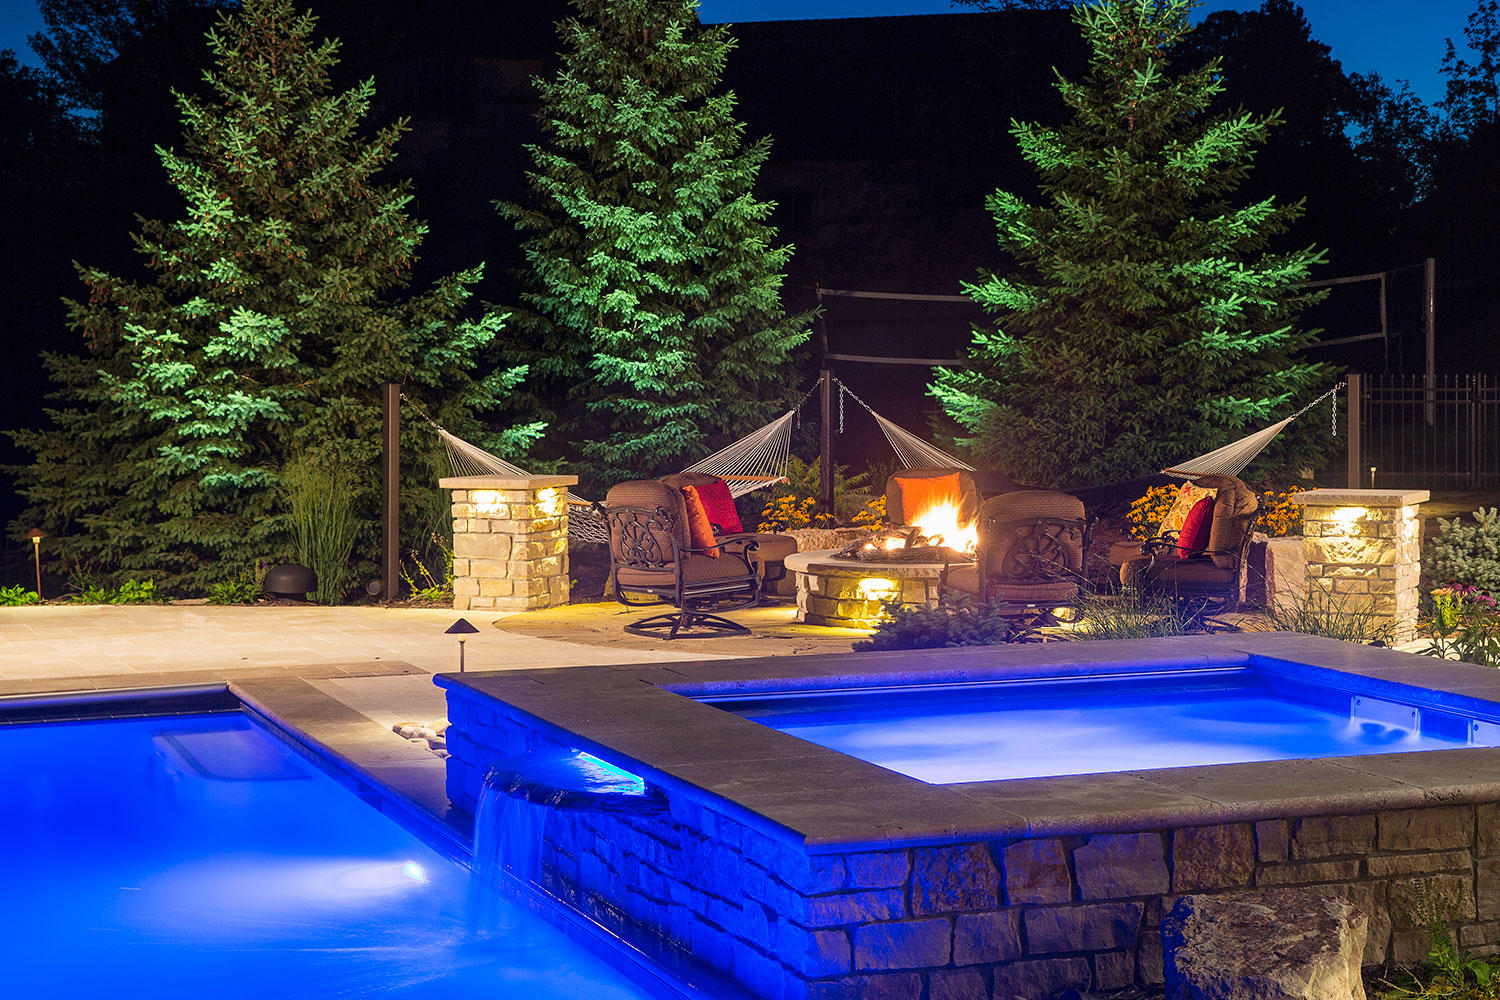 backyard hot tub and swimming pool with dramatic blue lighting